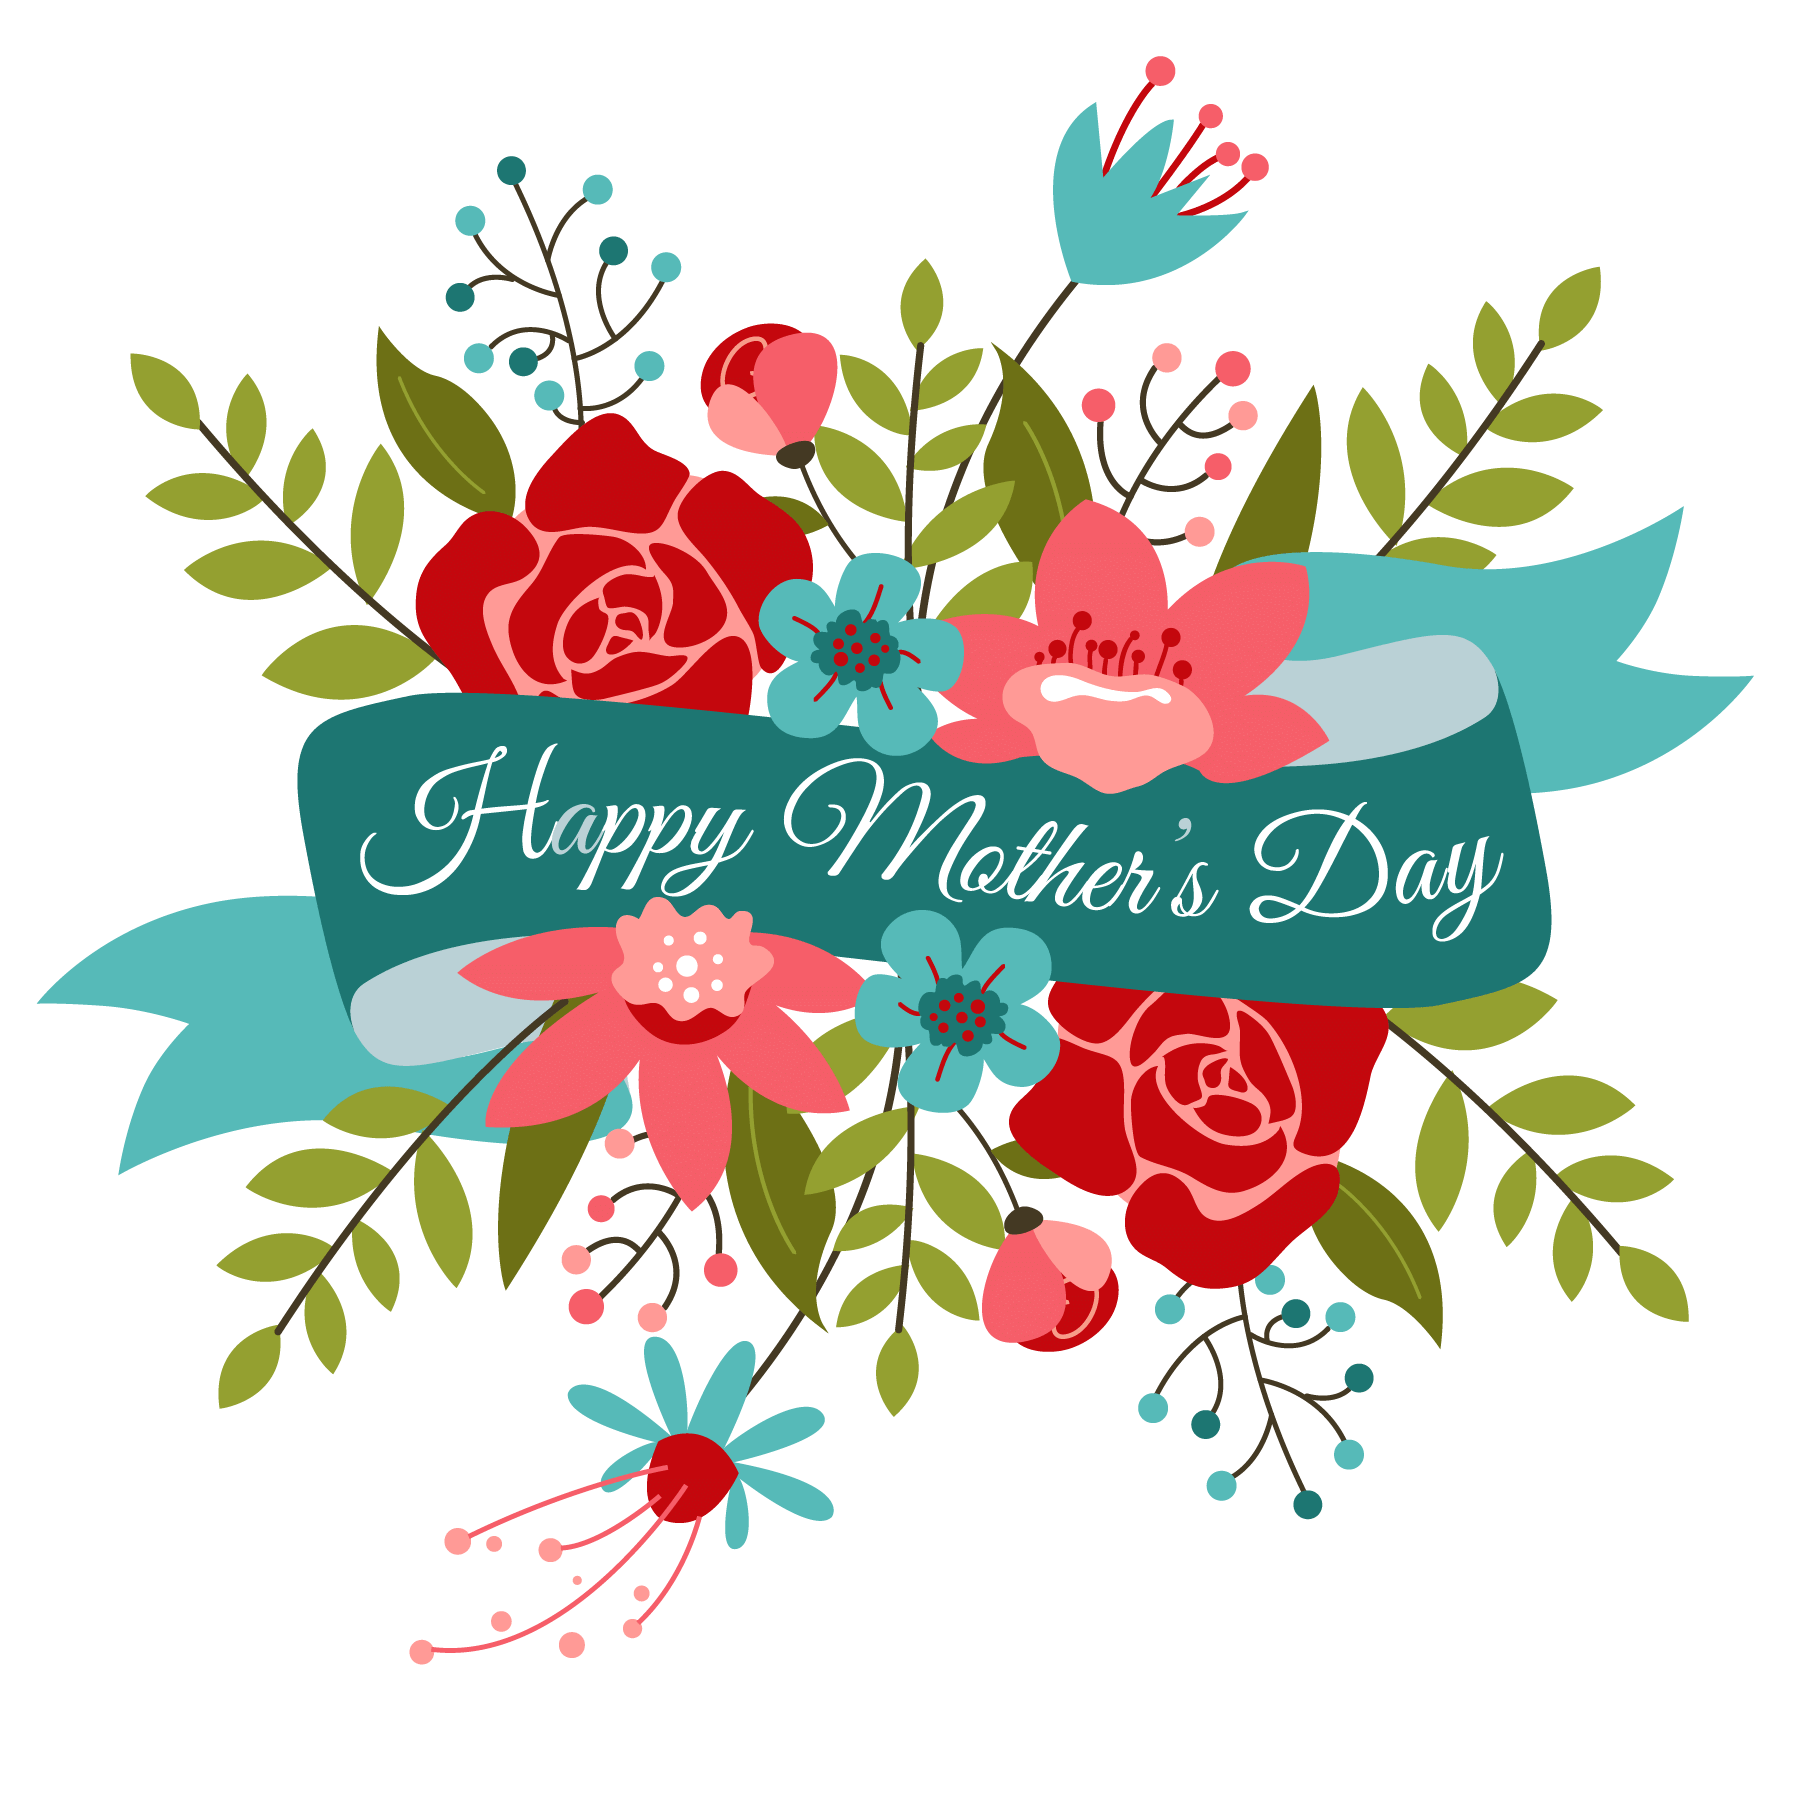 Mothers day clipart flowers jpg black and white download Happy Mothers Day Bouquet | momu | Happy mothers day clipart ... jpg black and white download